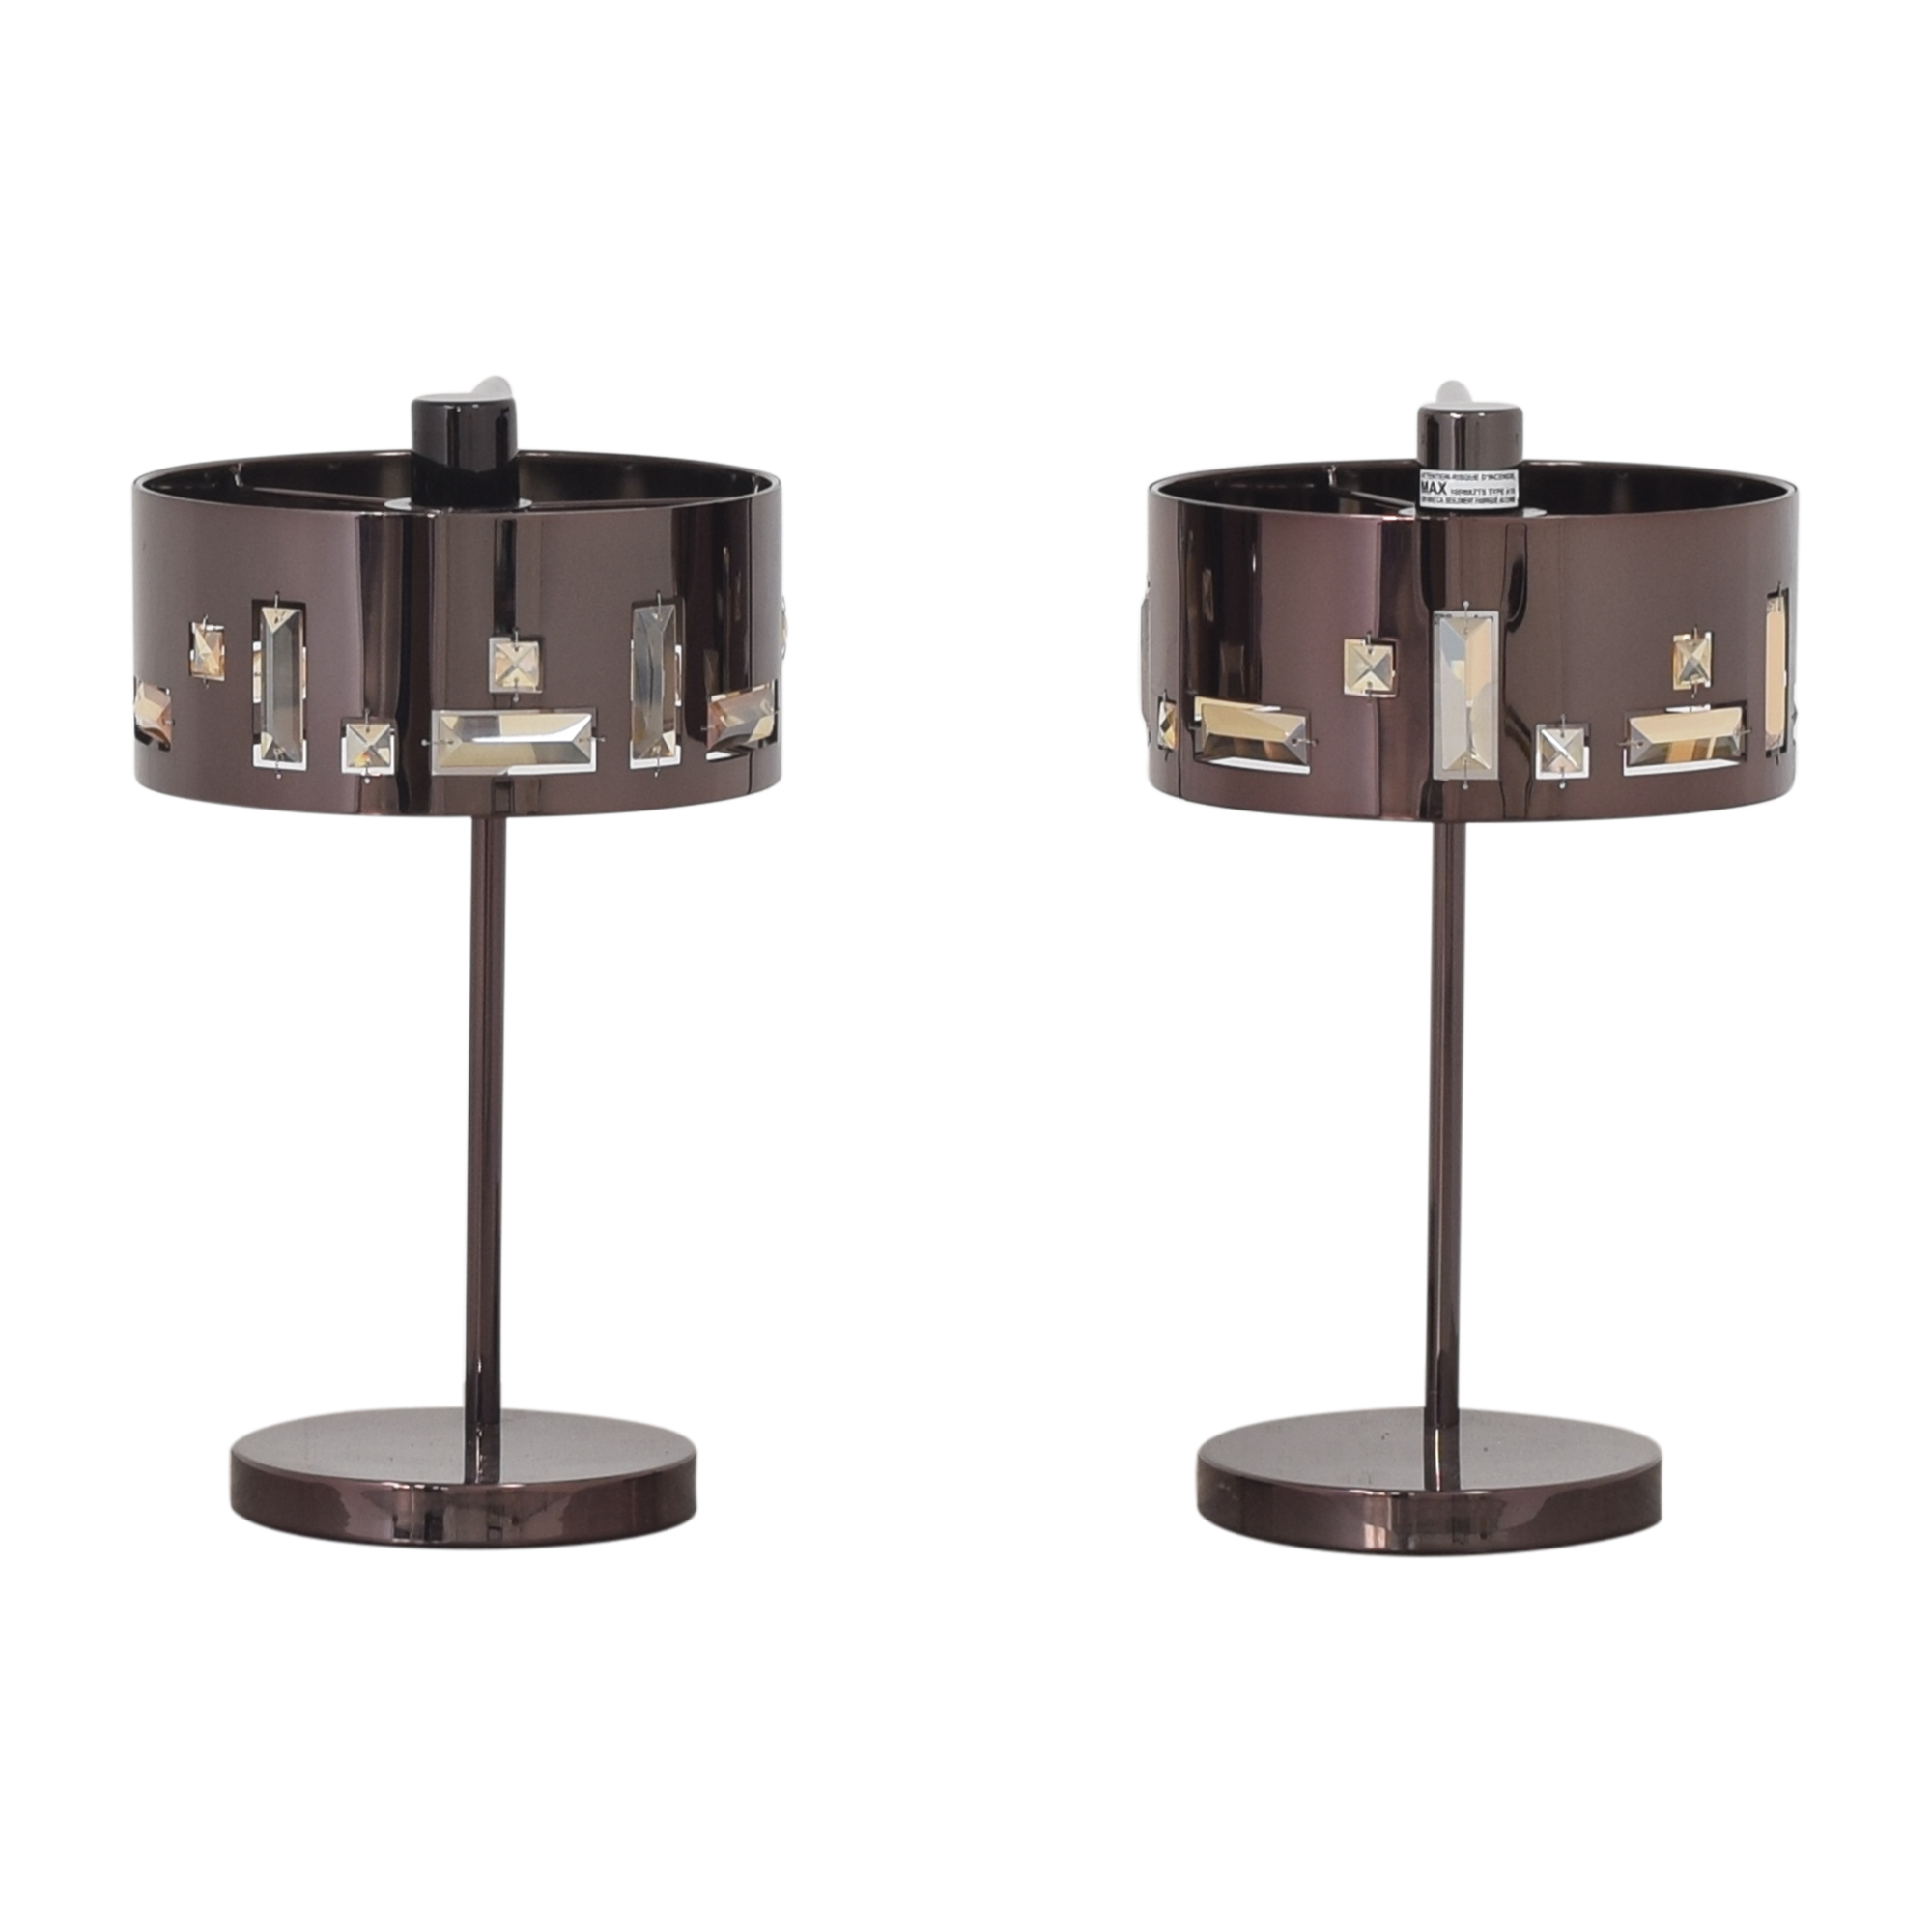 George Kovacs George Kovacs Bling Bang Table Lamps used